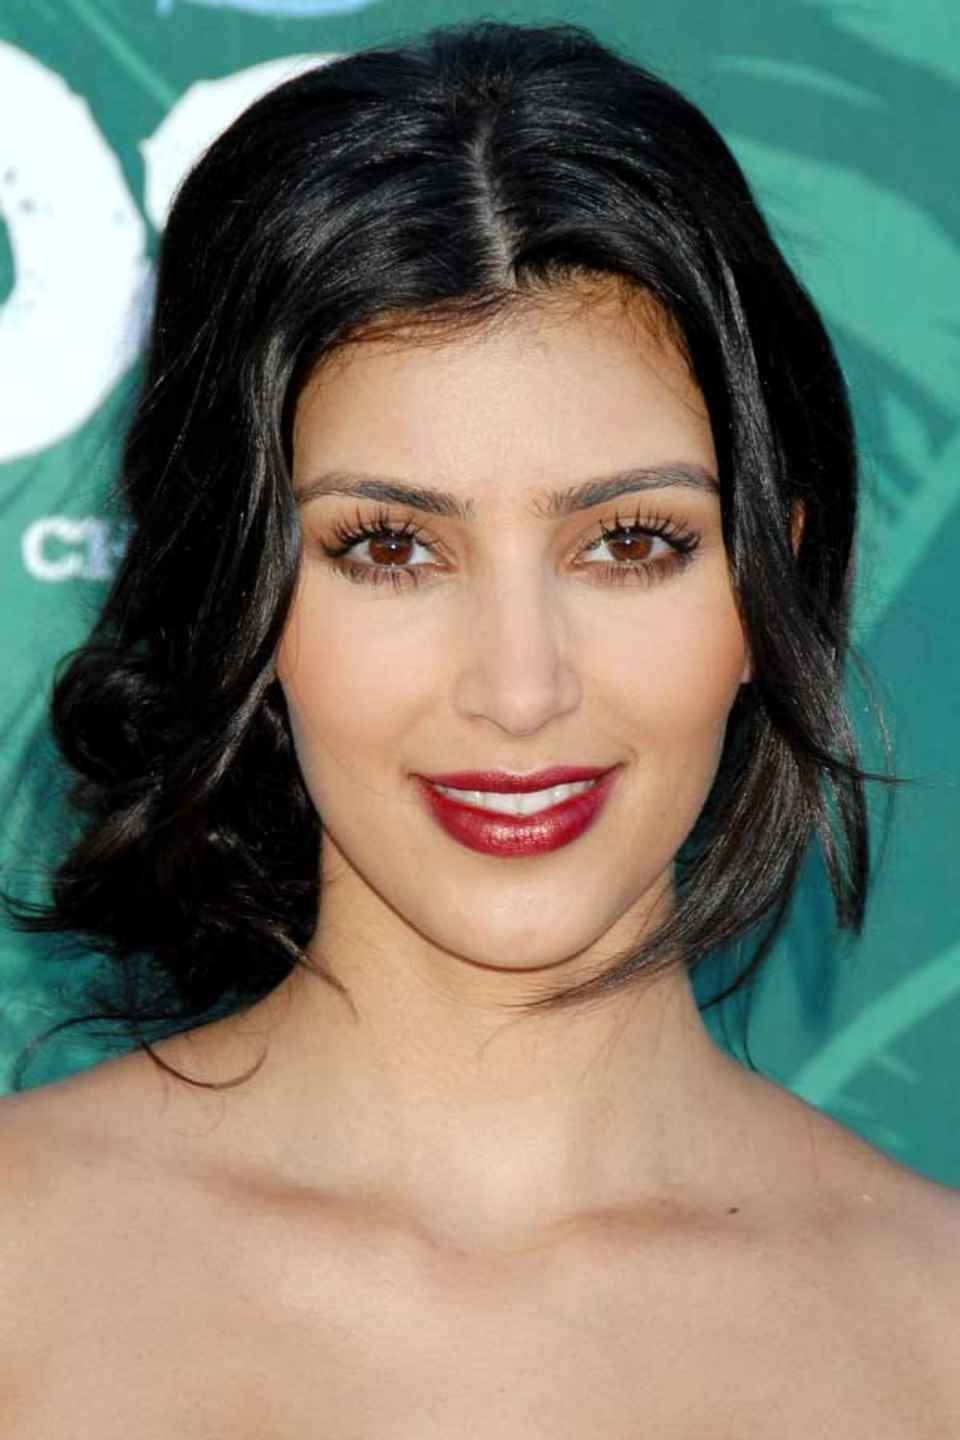 gold eye makeup kim kardashian | Looks - Makeup - Gold Eyes ...